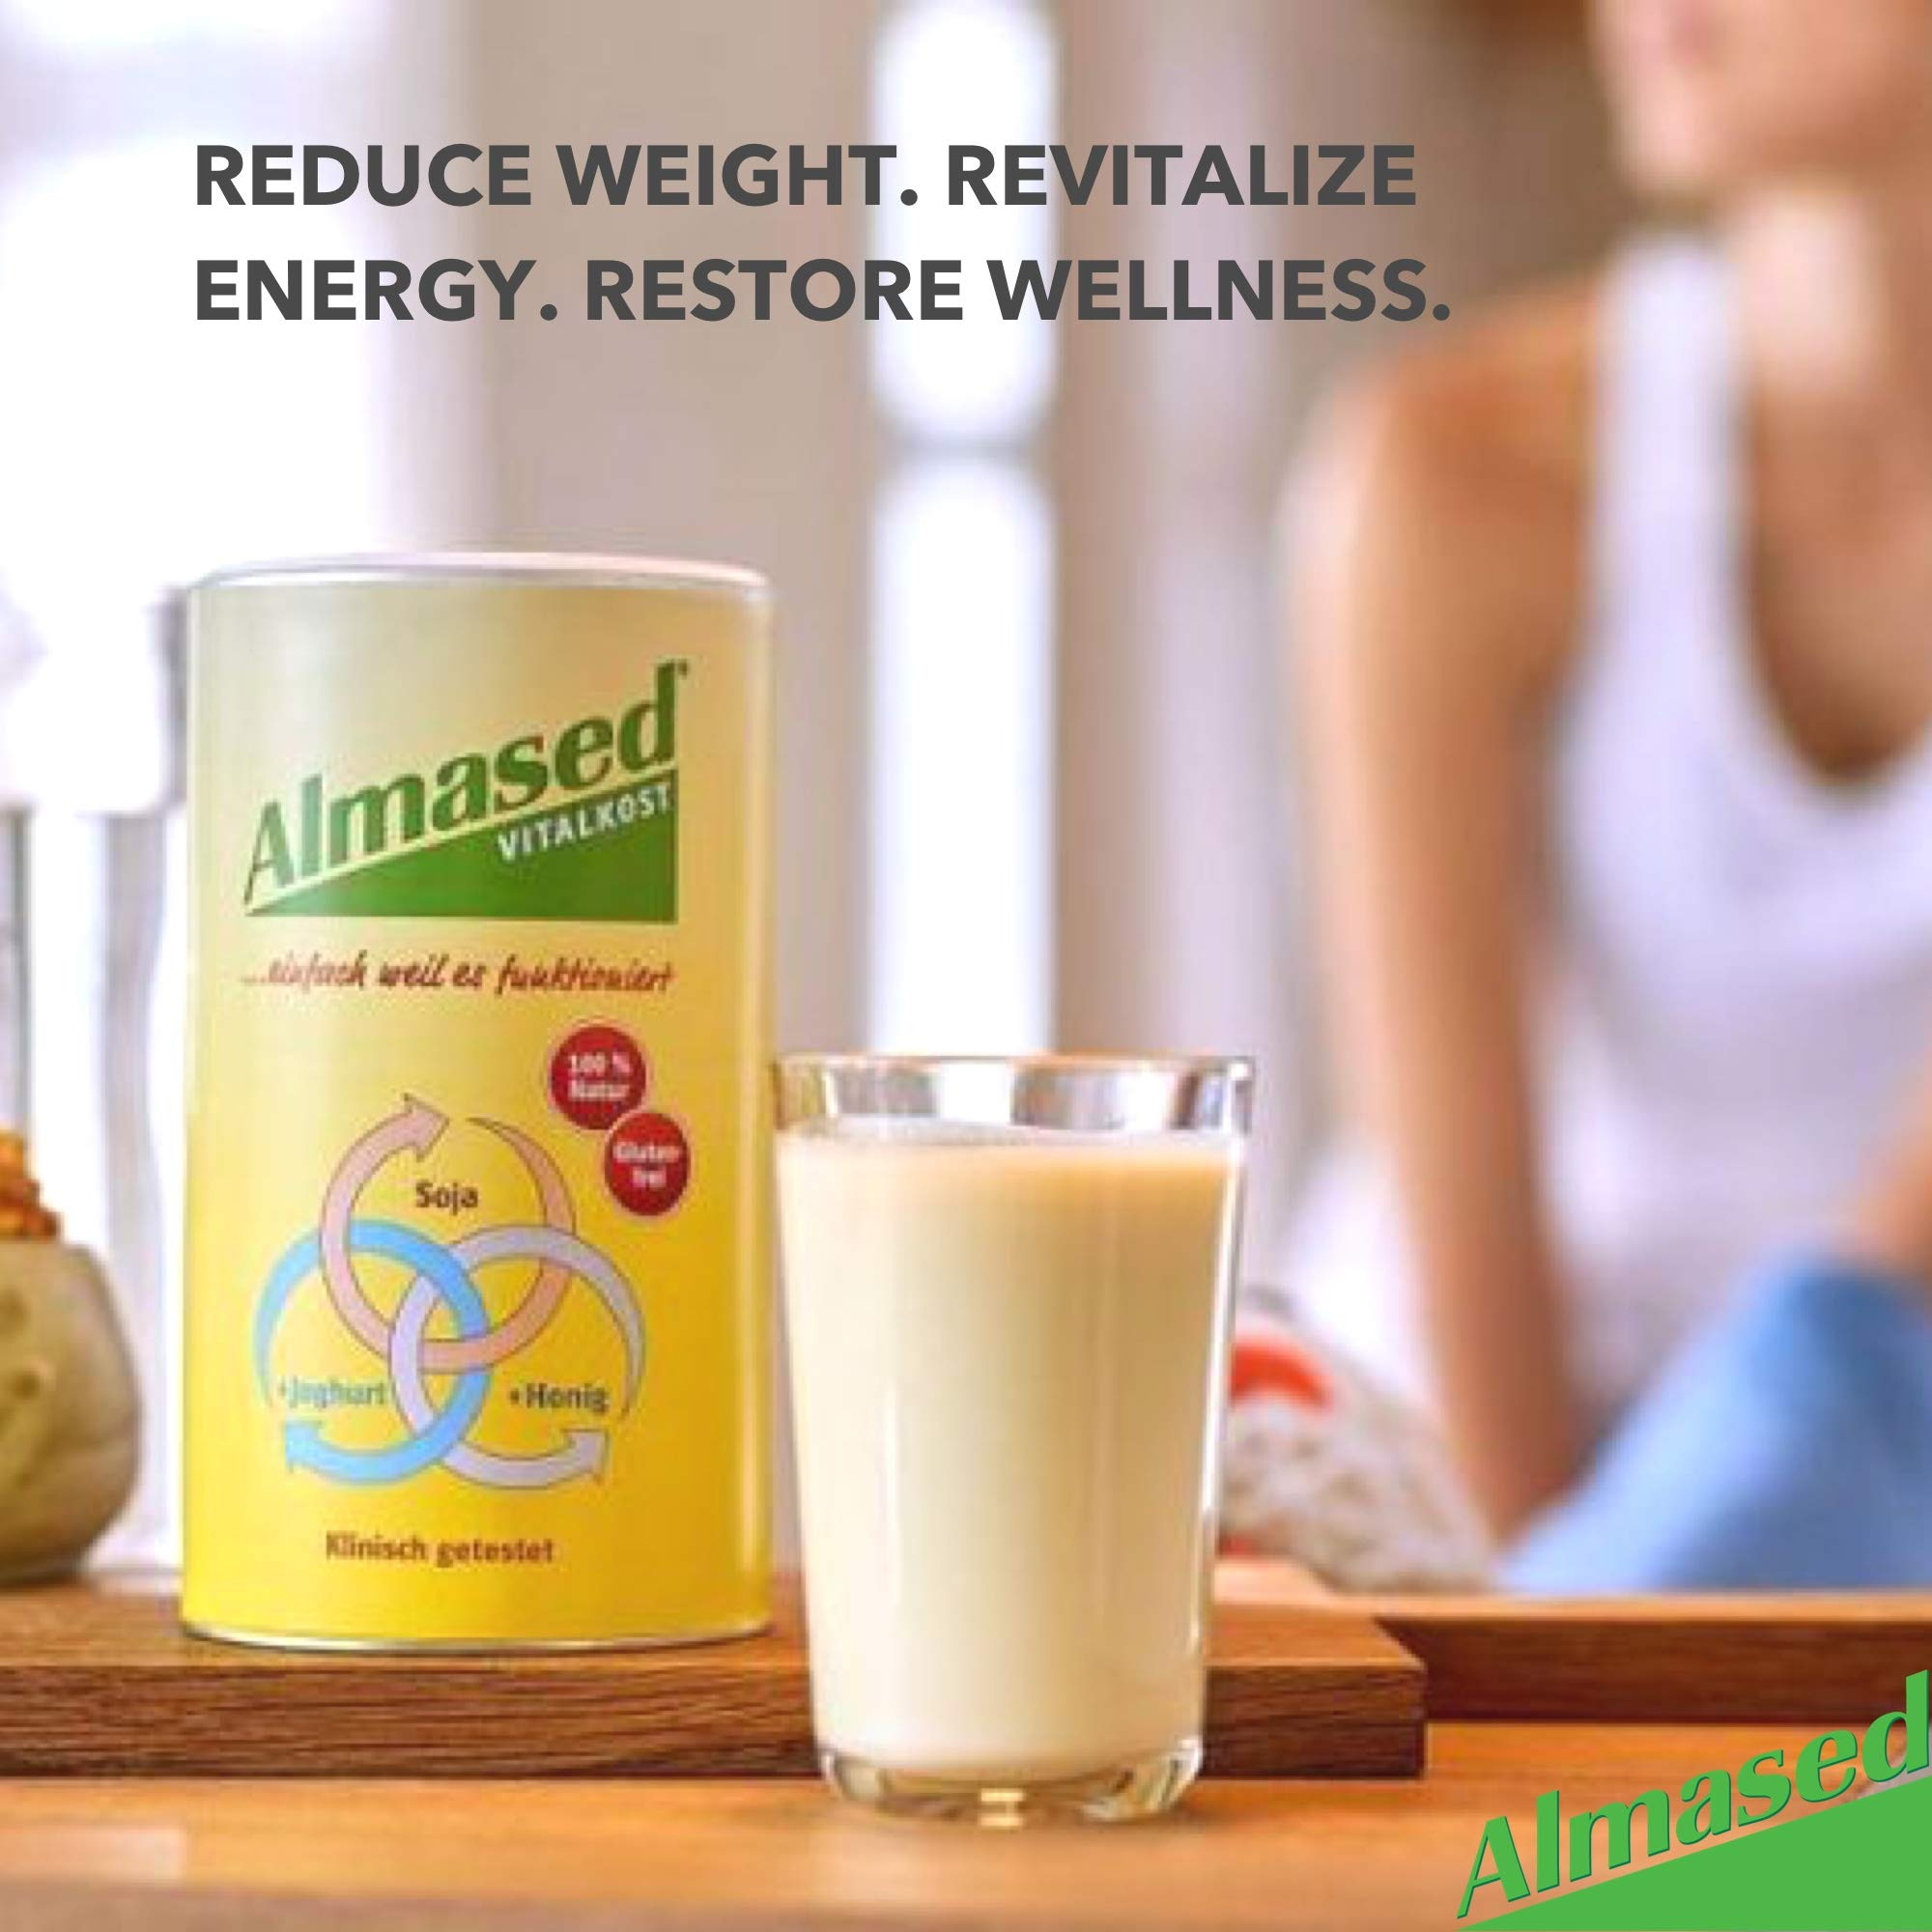 Almased Meal Replacement Shake (6 Pack) with Bonus Bamboo Spoon - 17.6 oz Powder - High Protein Weight Loss Drink, Fat Metabolism Booster - Vegetarian, Gluten Free - 60 Total Servings by Almased (Image #9)